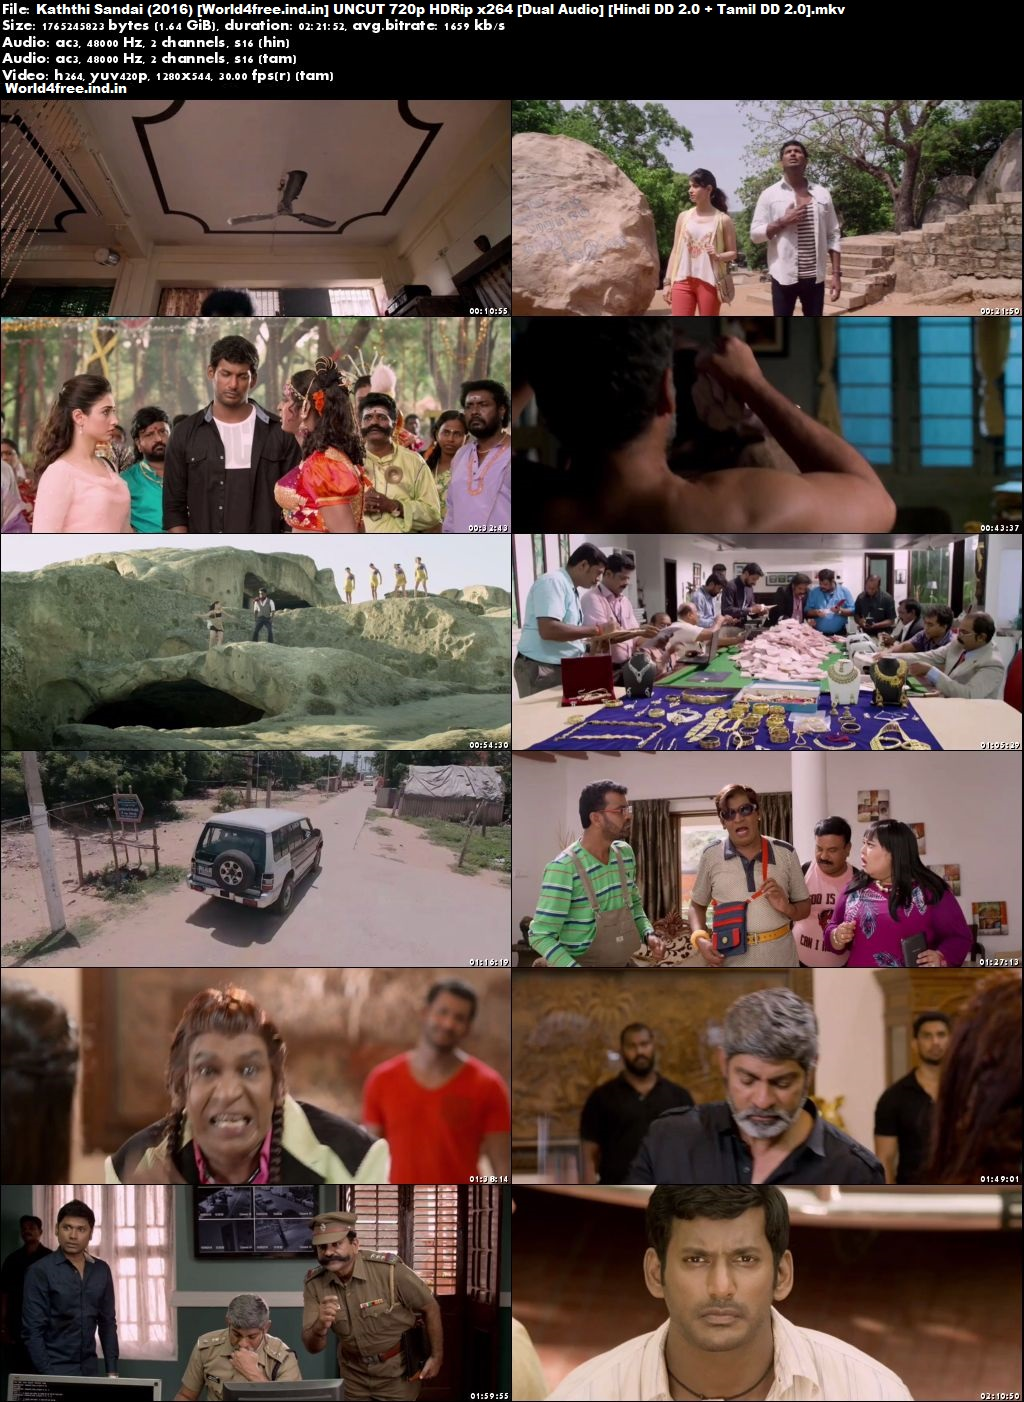 Kaththi Sandai 2016 world4free.ind.in Hindi HDRip 720p Dubbed Movie Download